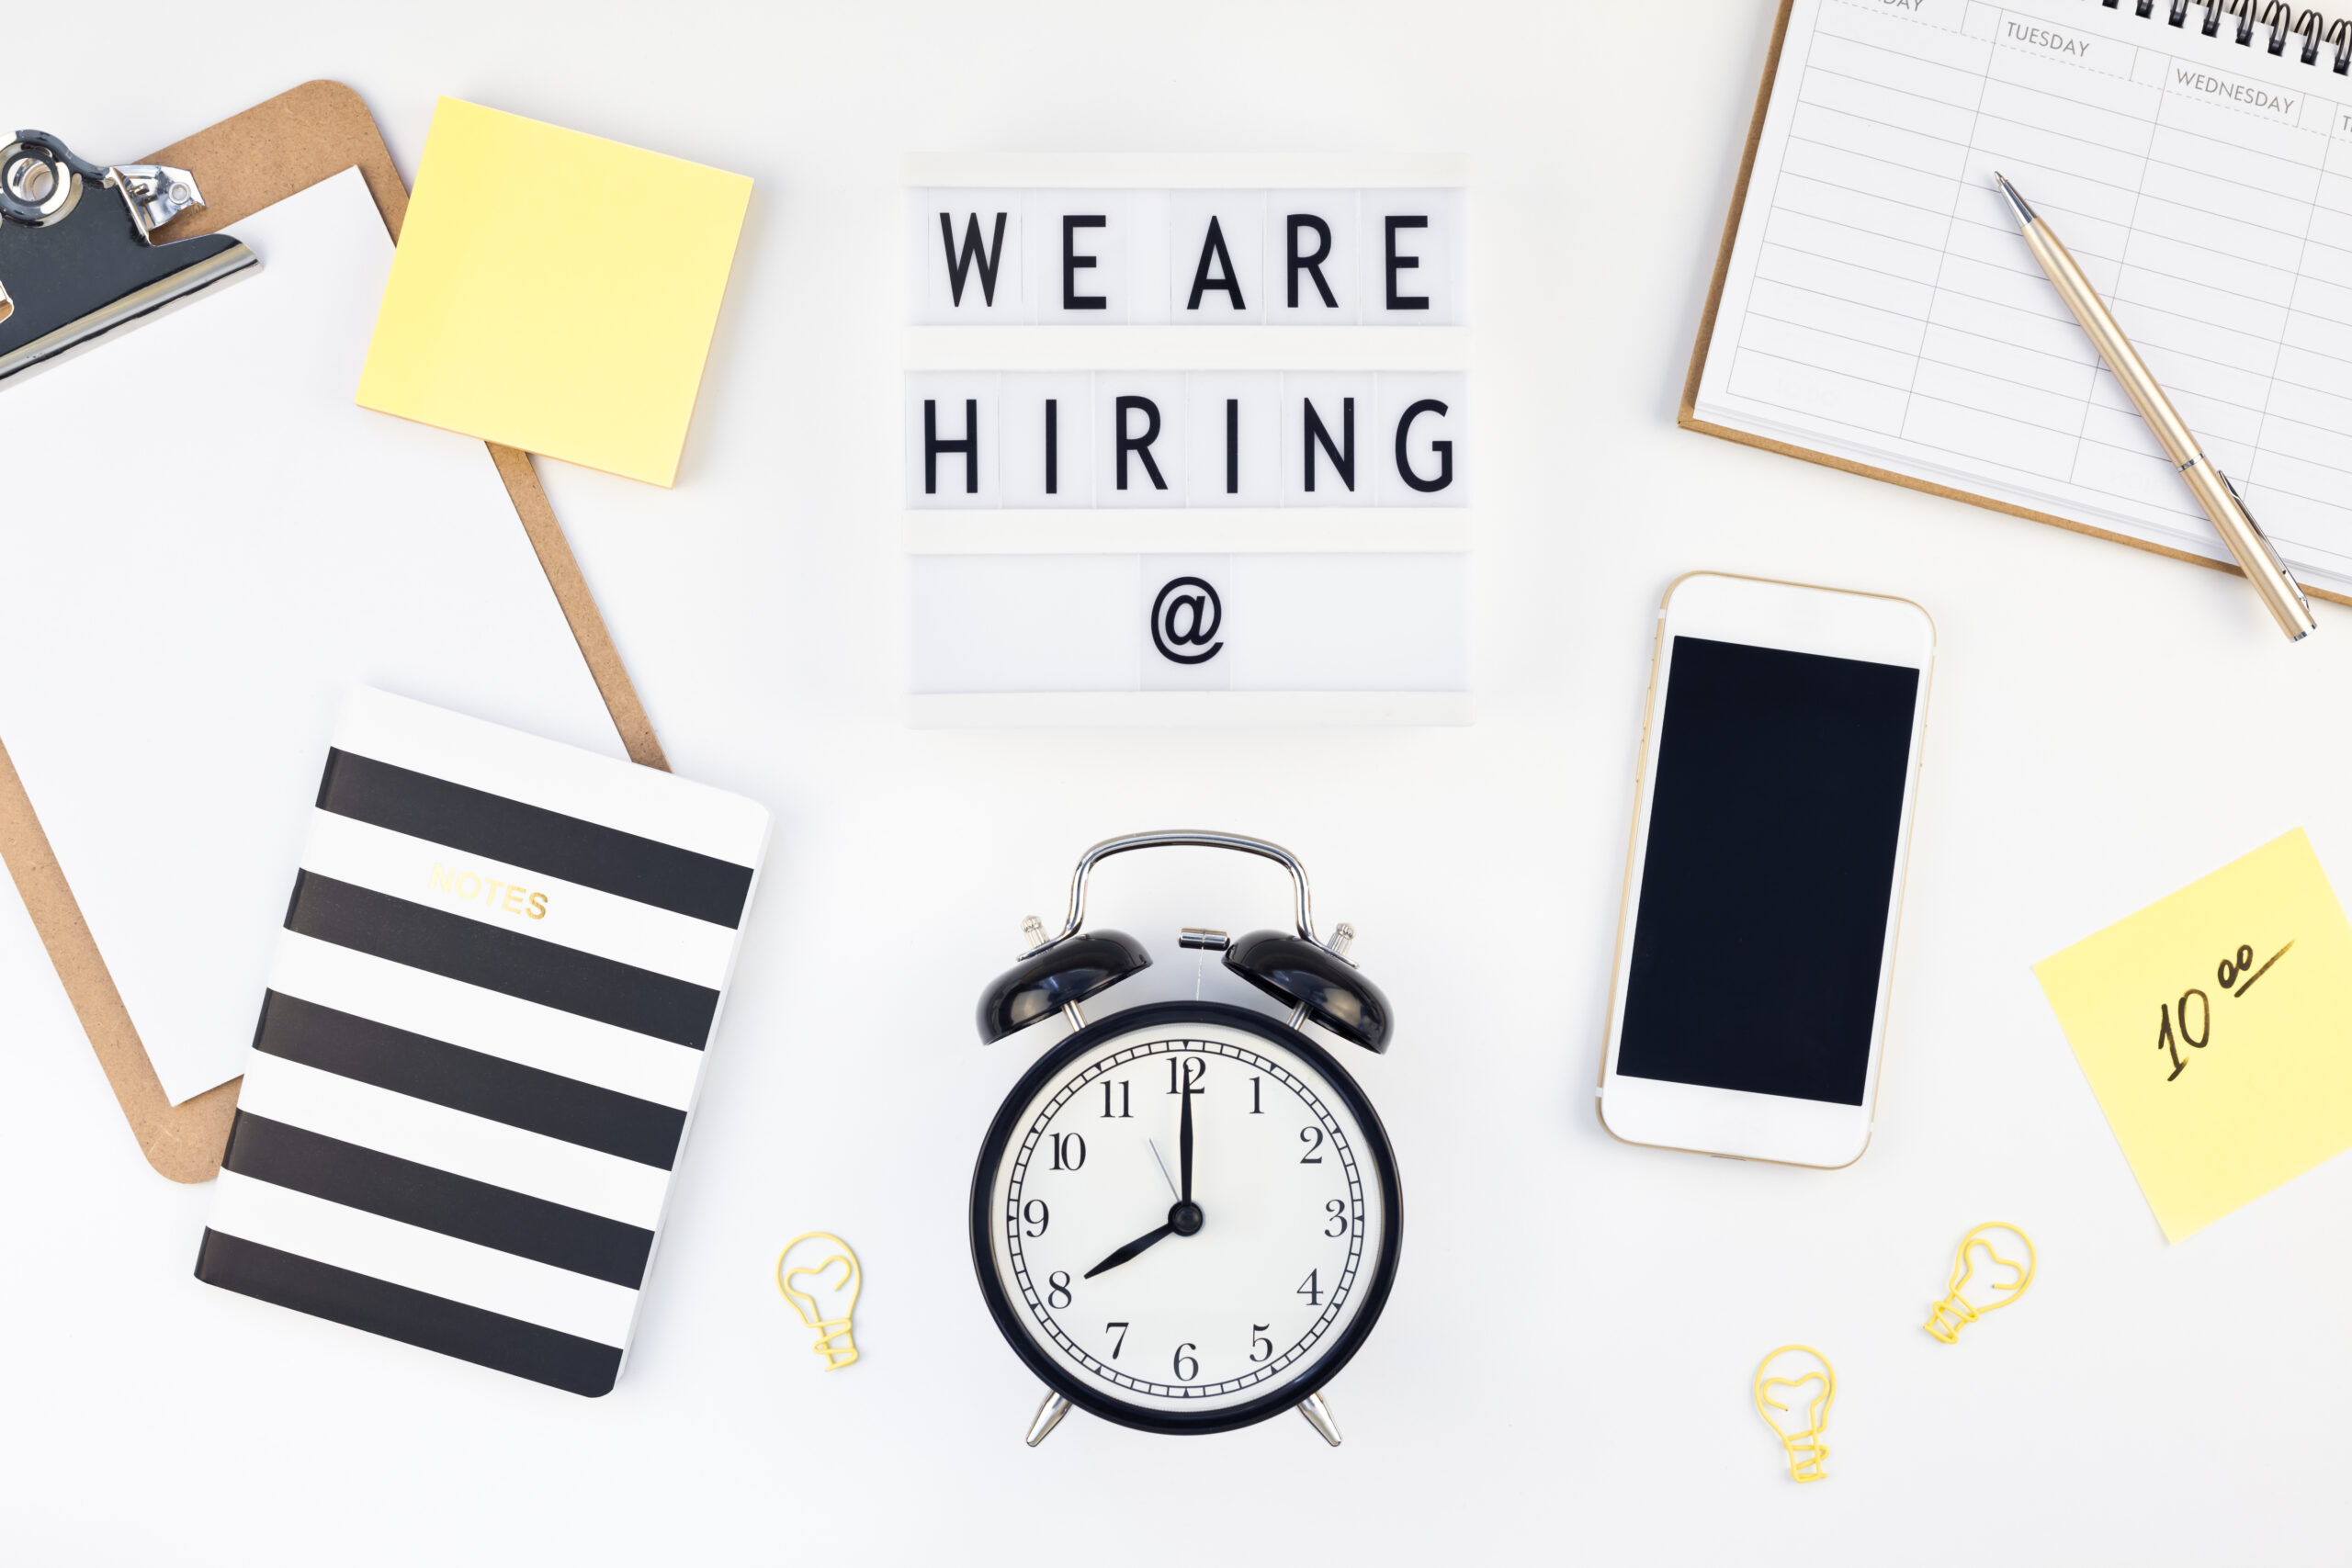 We are hiring flat lay on white background